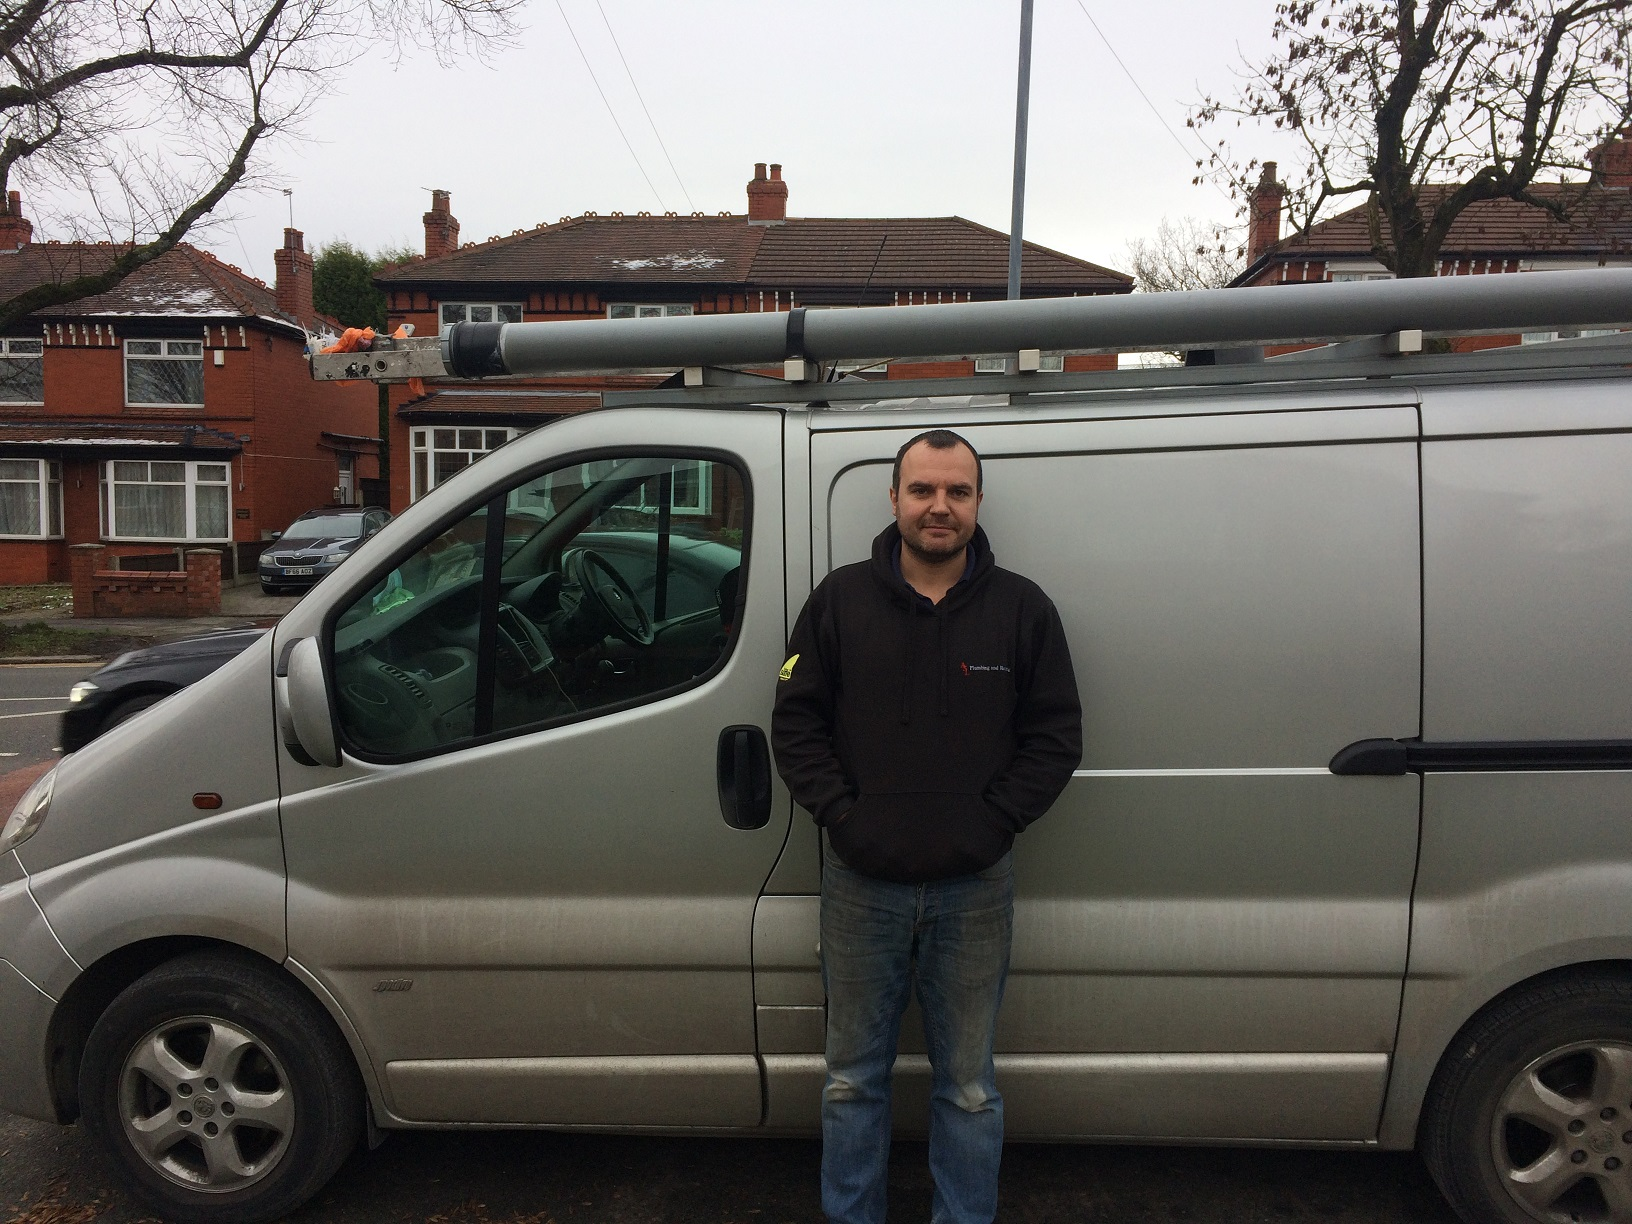 Richard Ormerod ASL Plumbing and Heating, plumbers in Hyde, Tameside, Greater Manchester and Cheshire